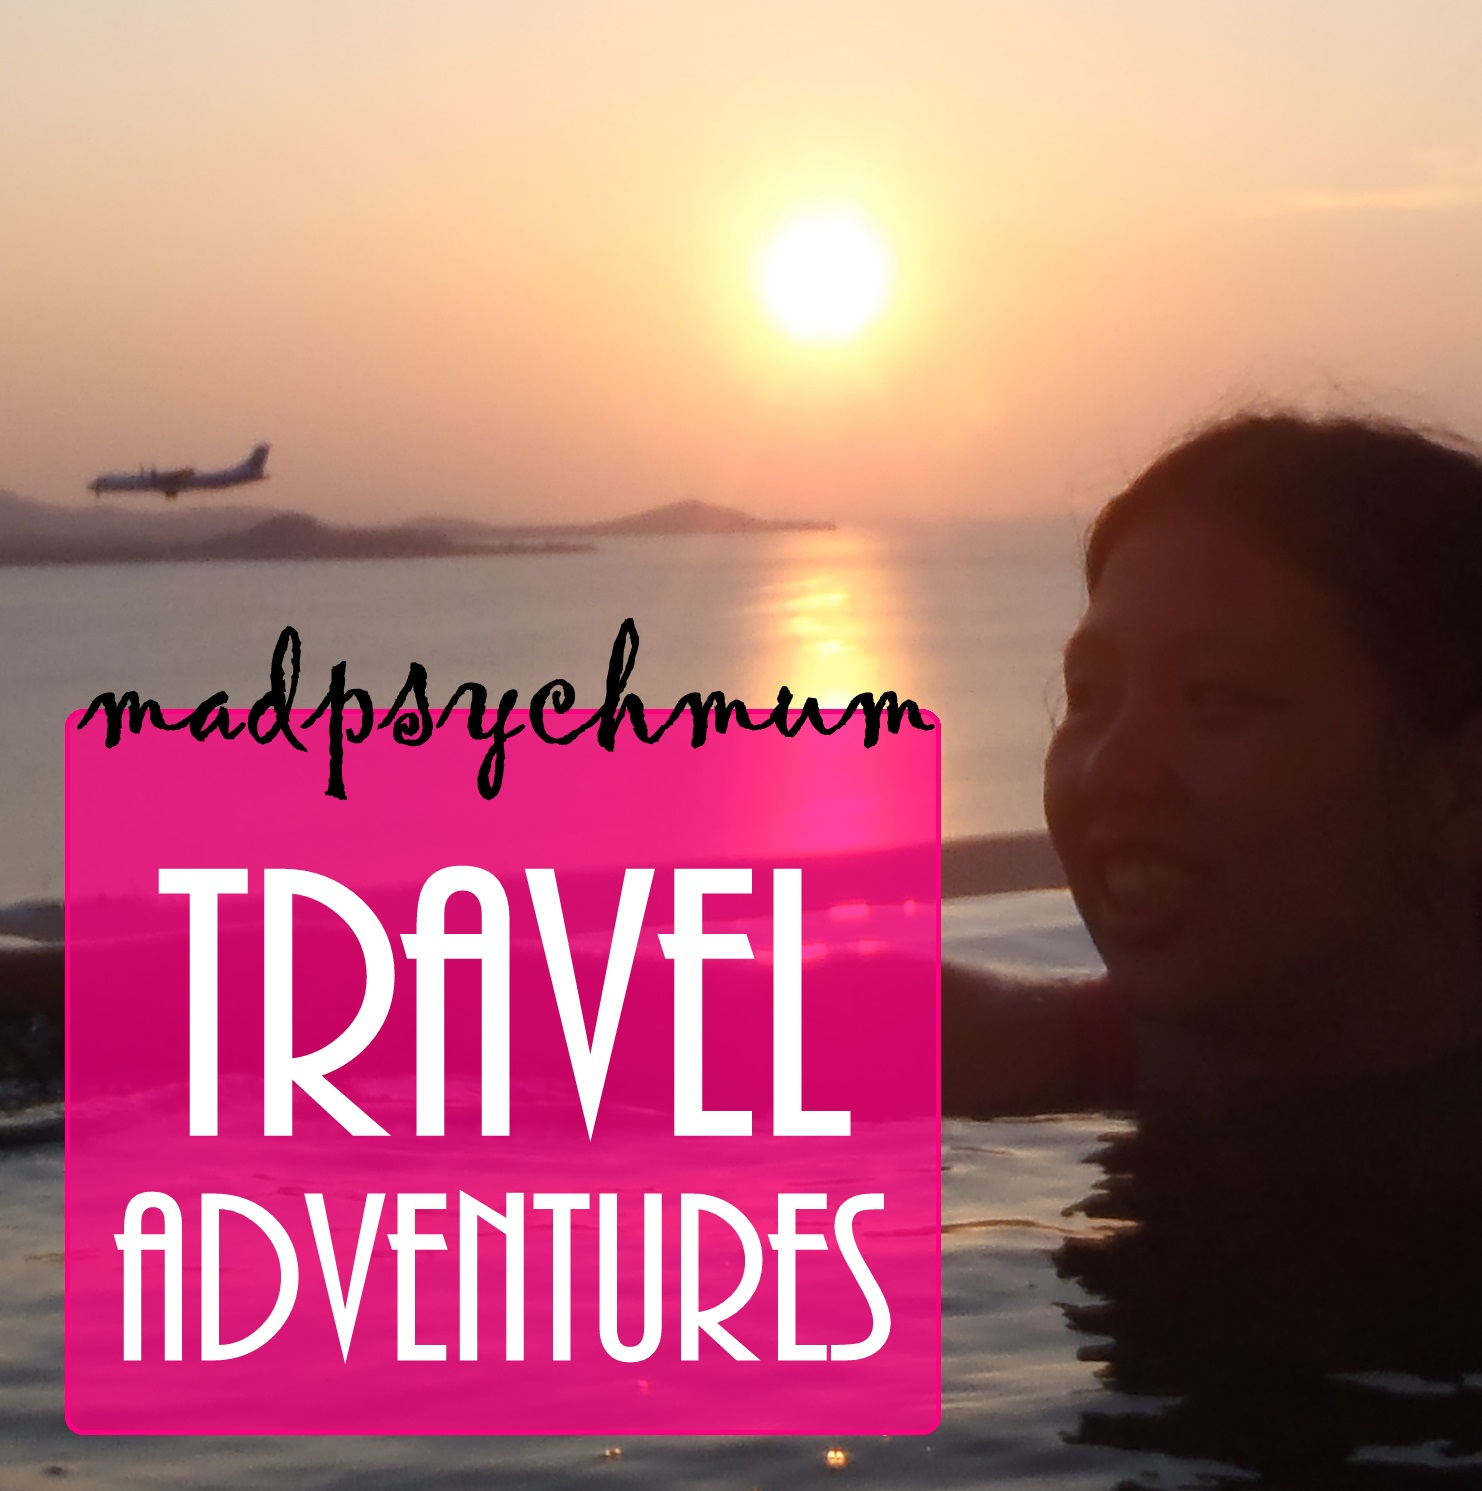 Our Travel Adventures!